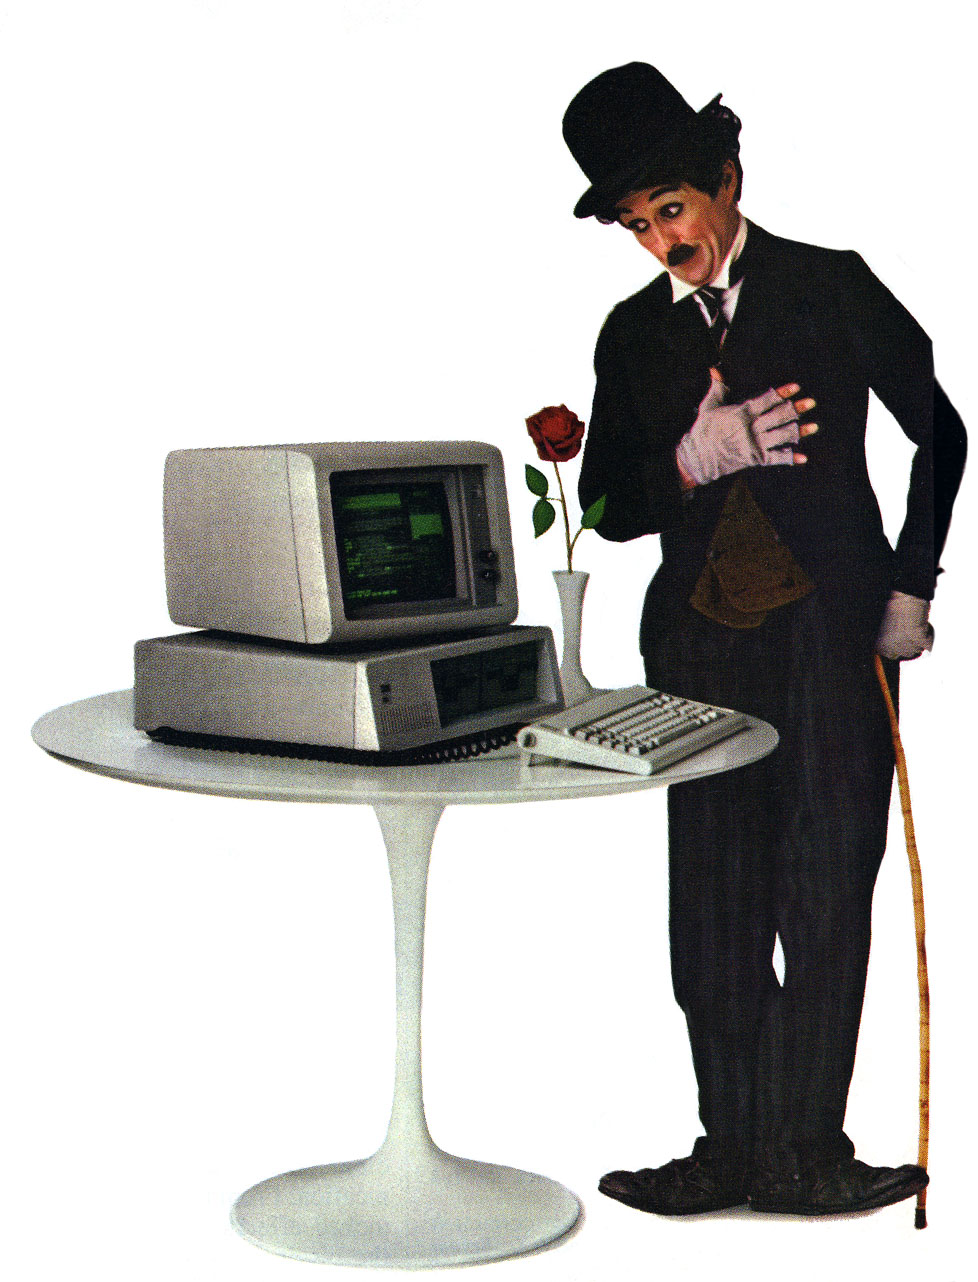 Photo of IBM PC advertisement with a Charlie Chaplin like person, rose and PC